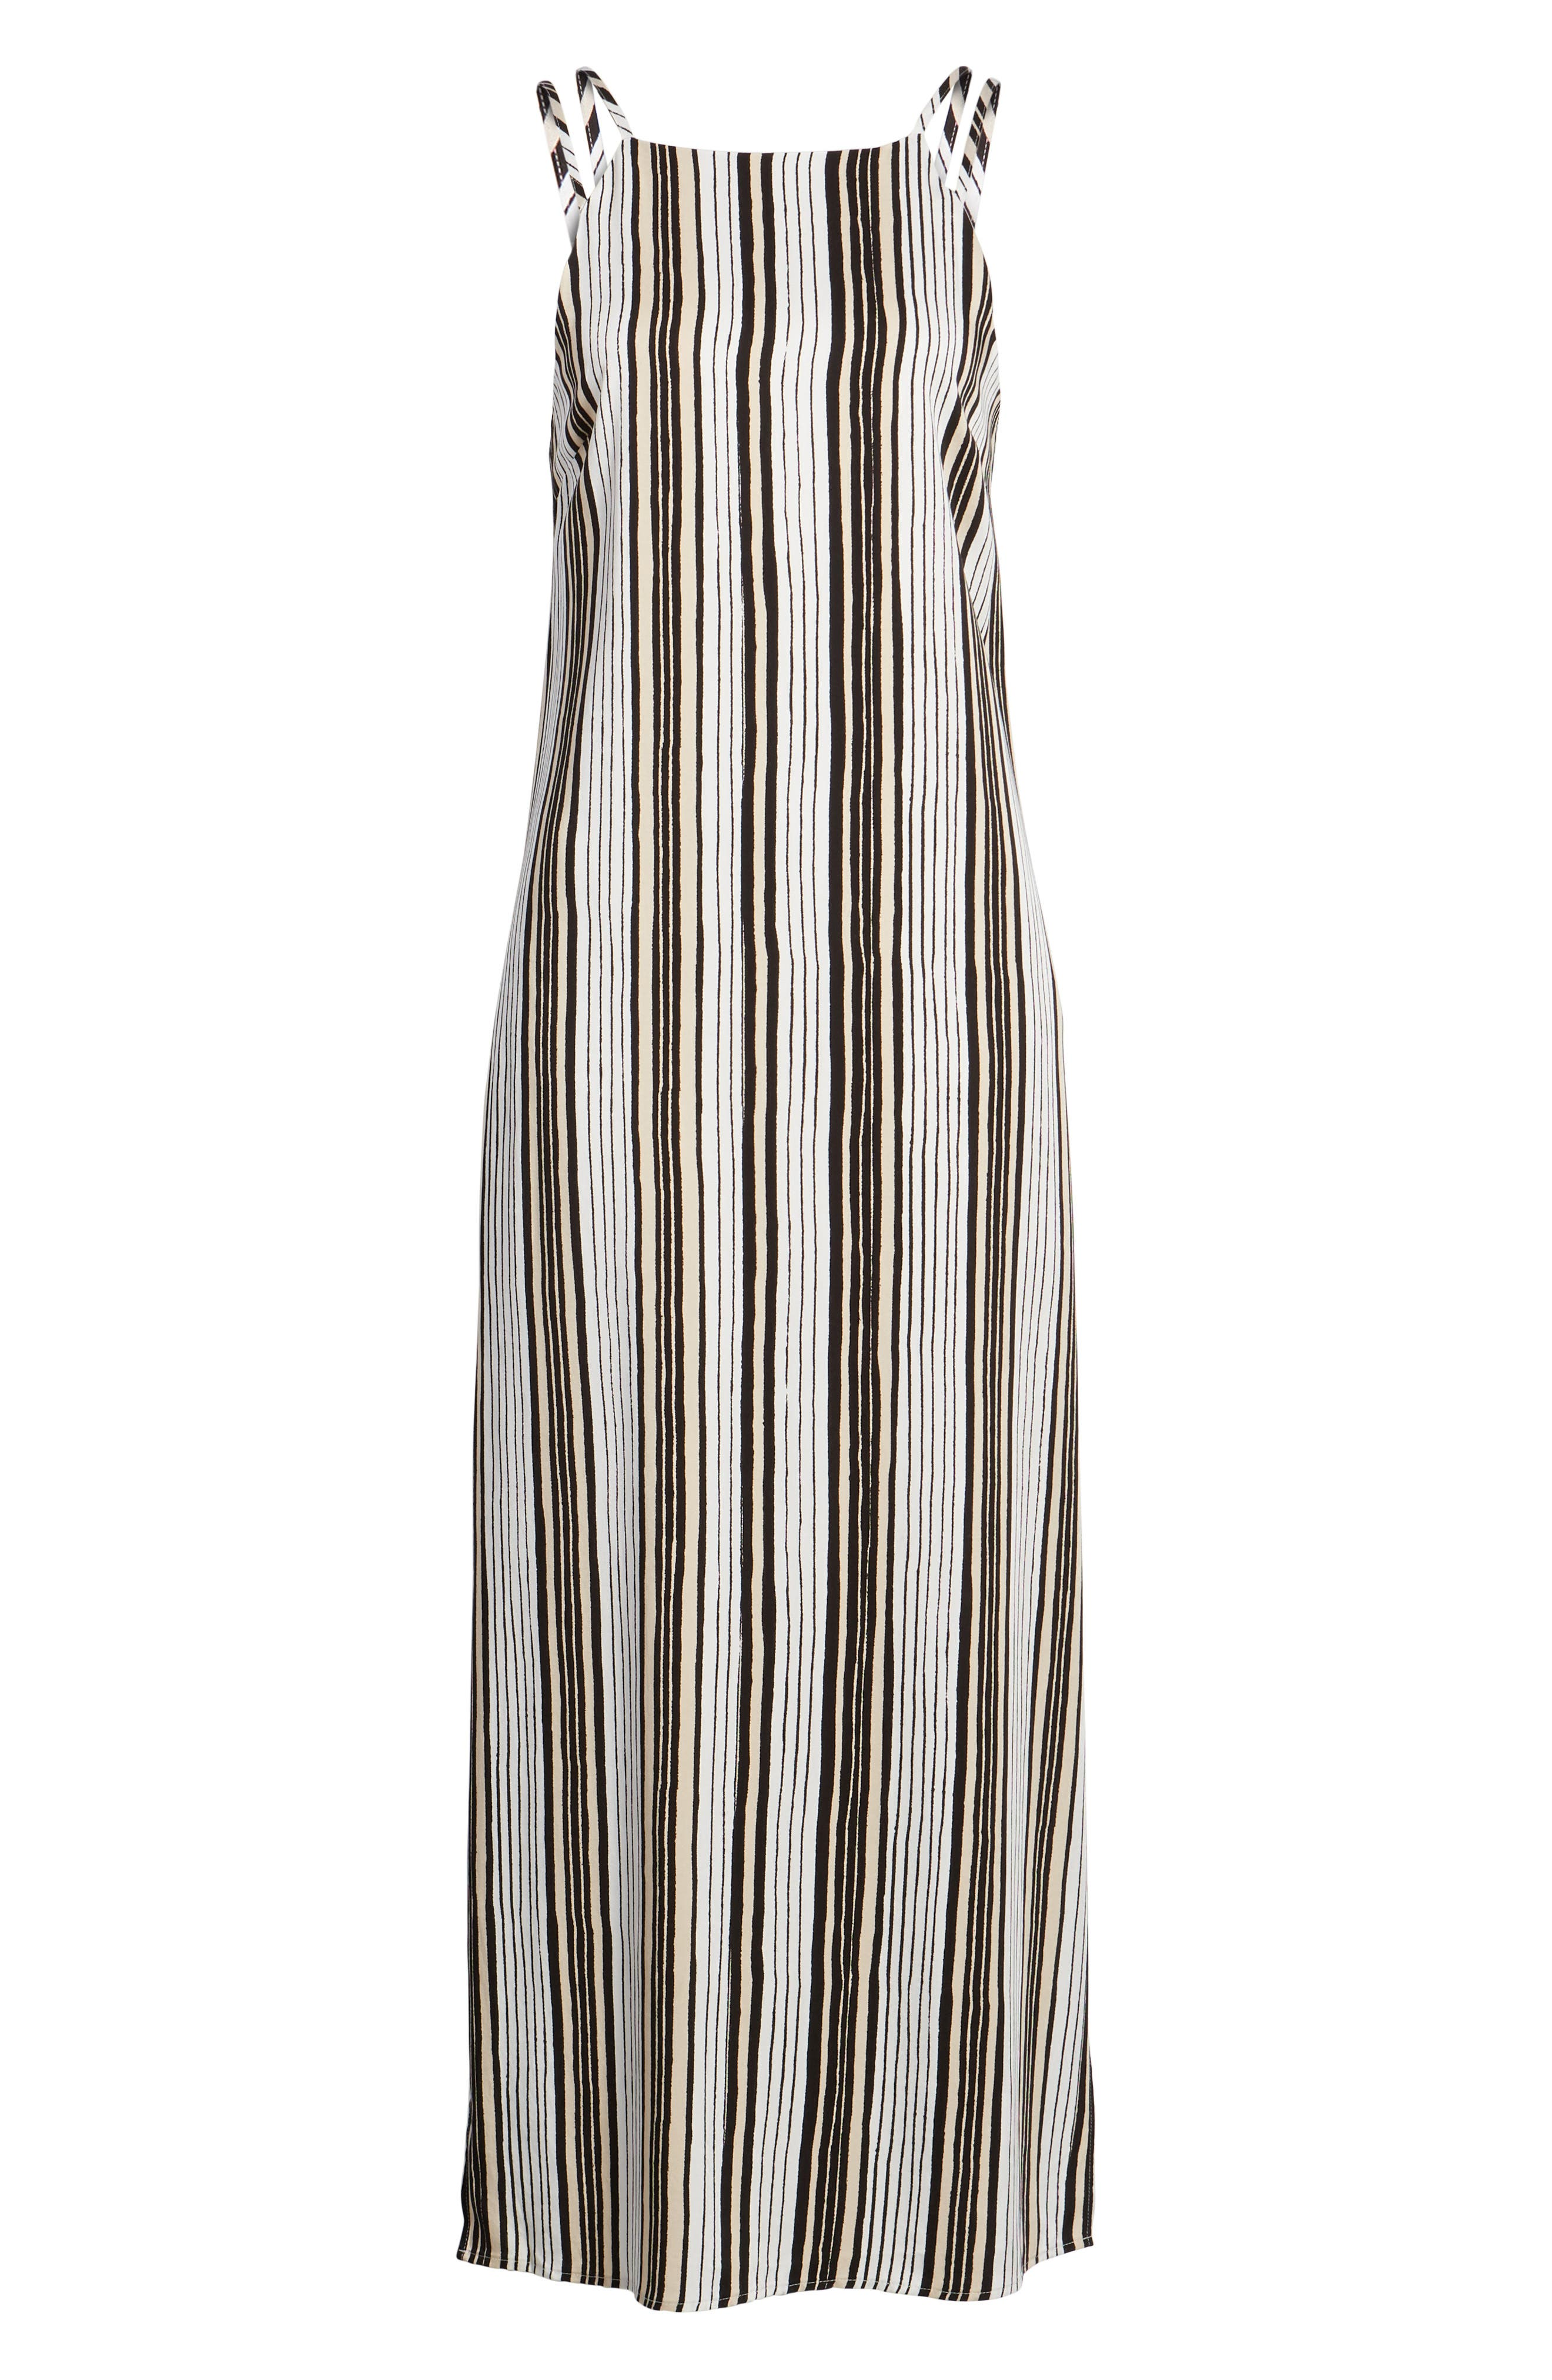 Corin Stripe Maxi Dress,                             Alternate thumbnail 7, color,                             900